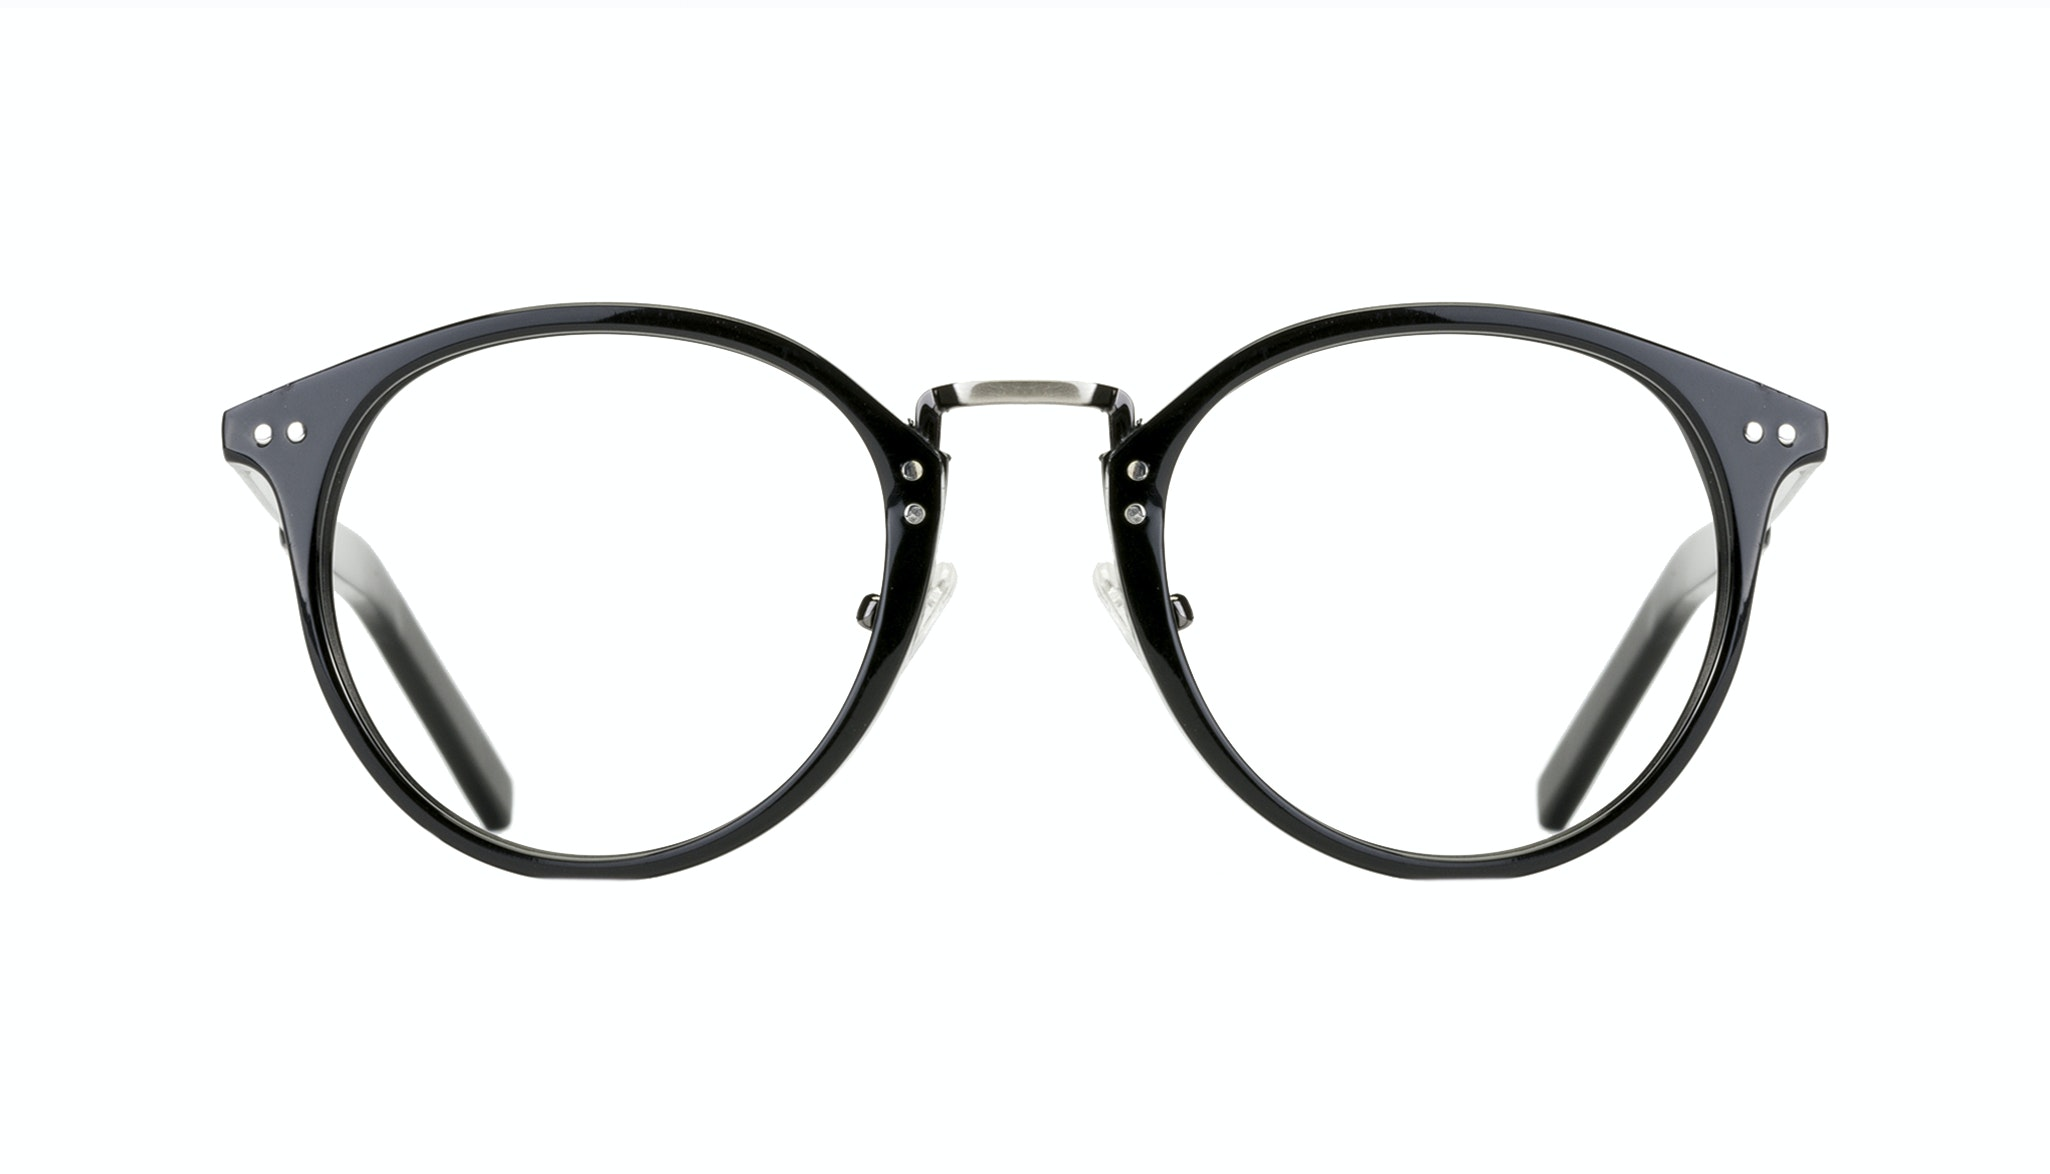 Affordable Fashion Glasses Round Eyeglasses Men Truly Black